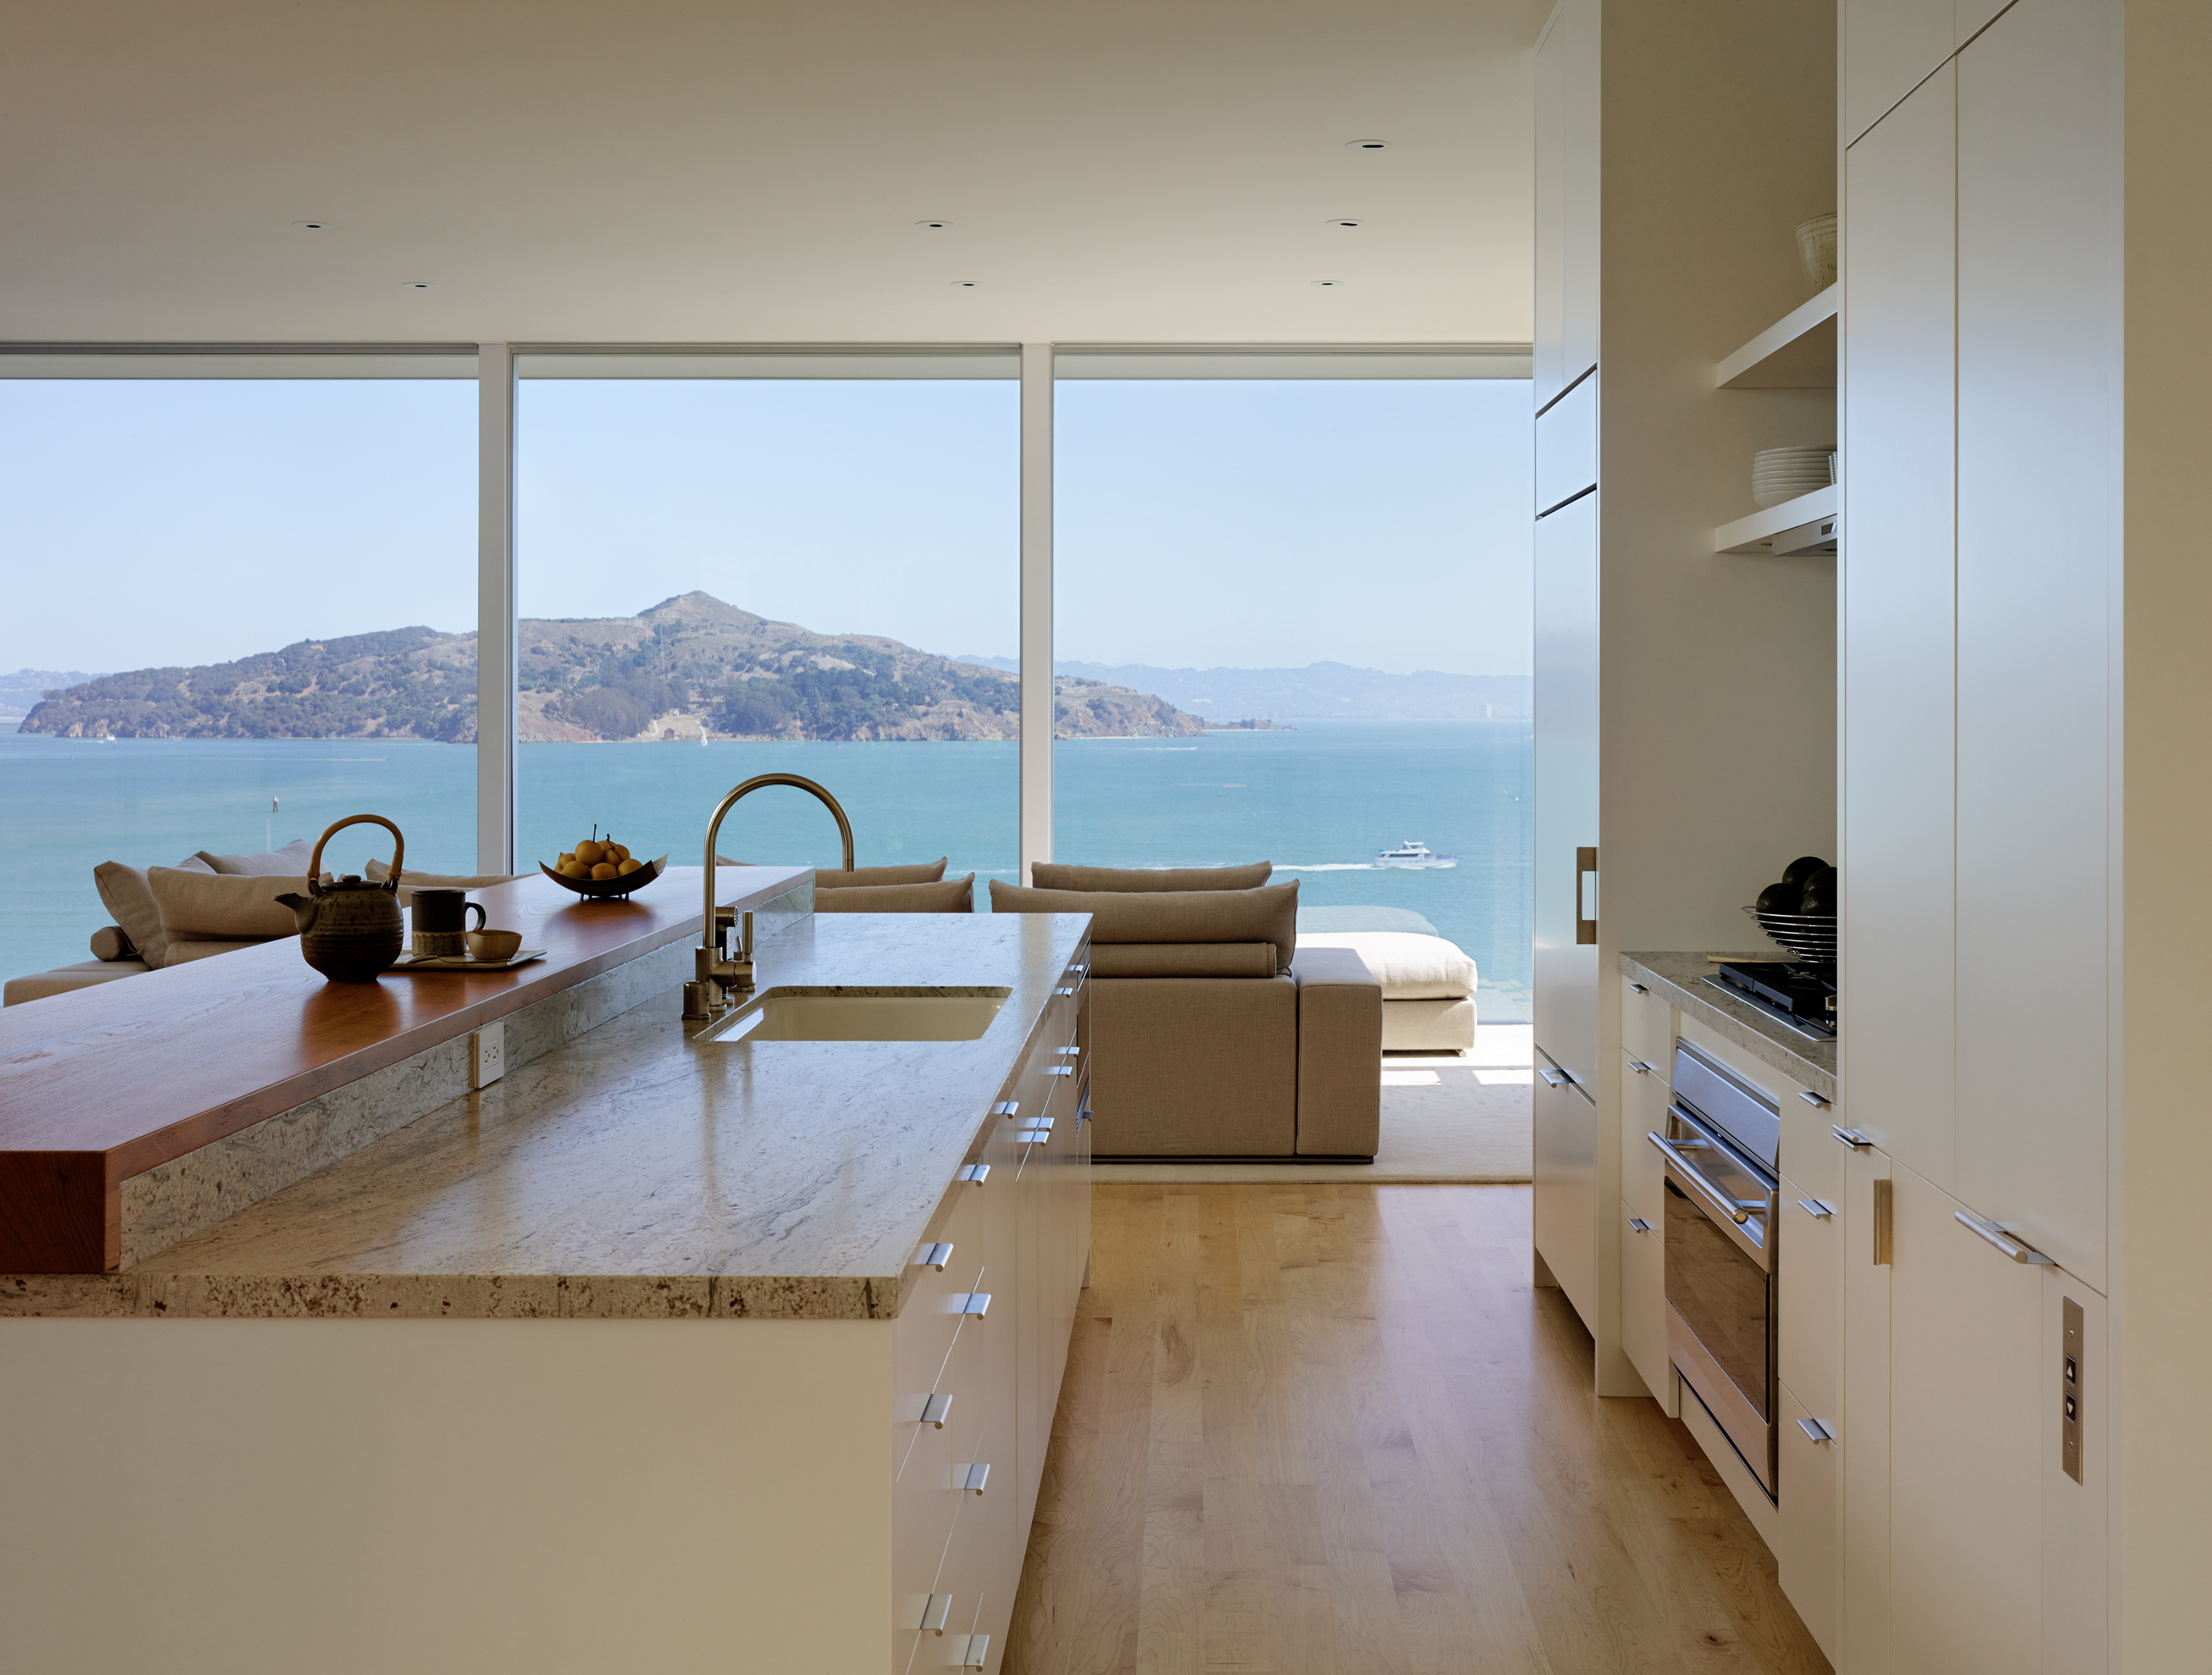 The white cabinets of the kitchen have chrome handles that complement the stainless steel appliances and other fixtures. The two-tier kitchen island is granite and wood. A beautiful view of Angel Island is prominent while working in the kitchen.